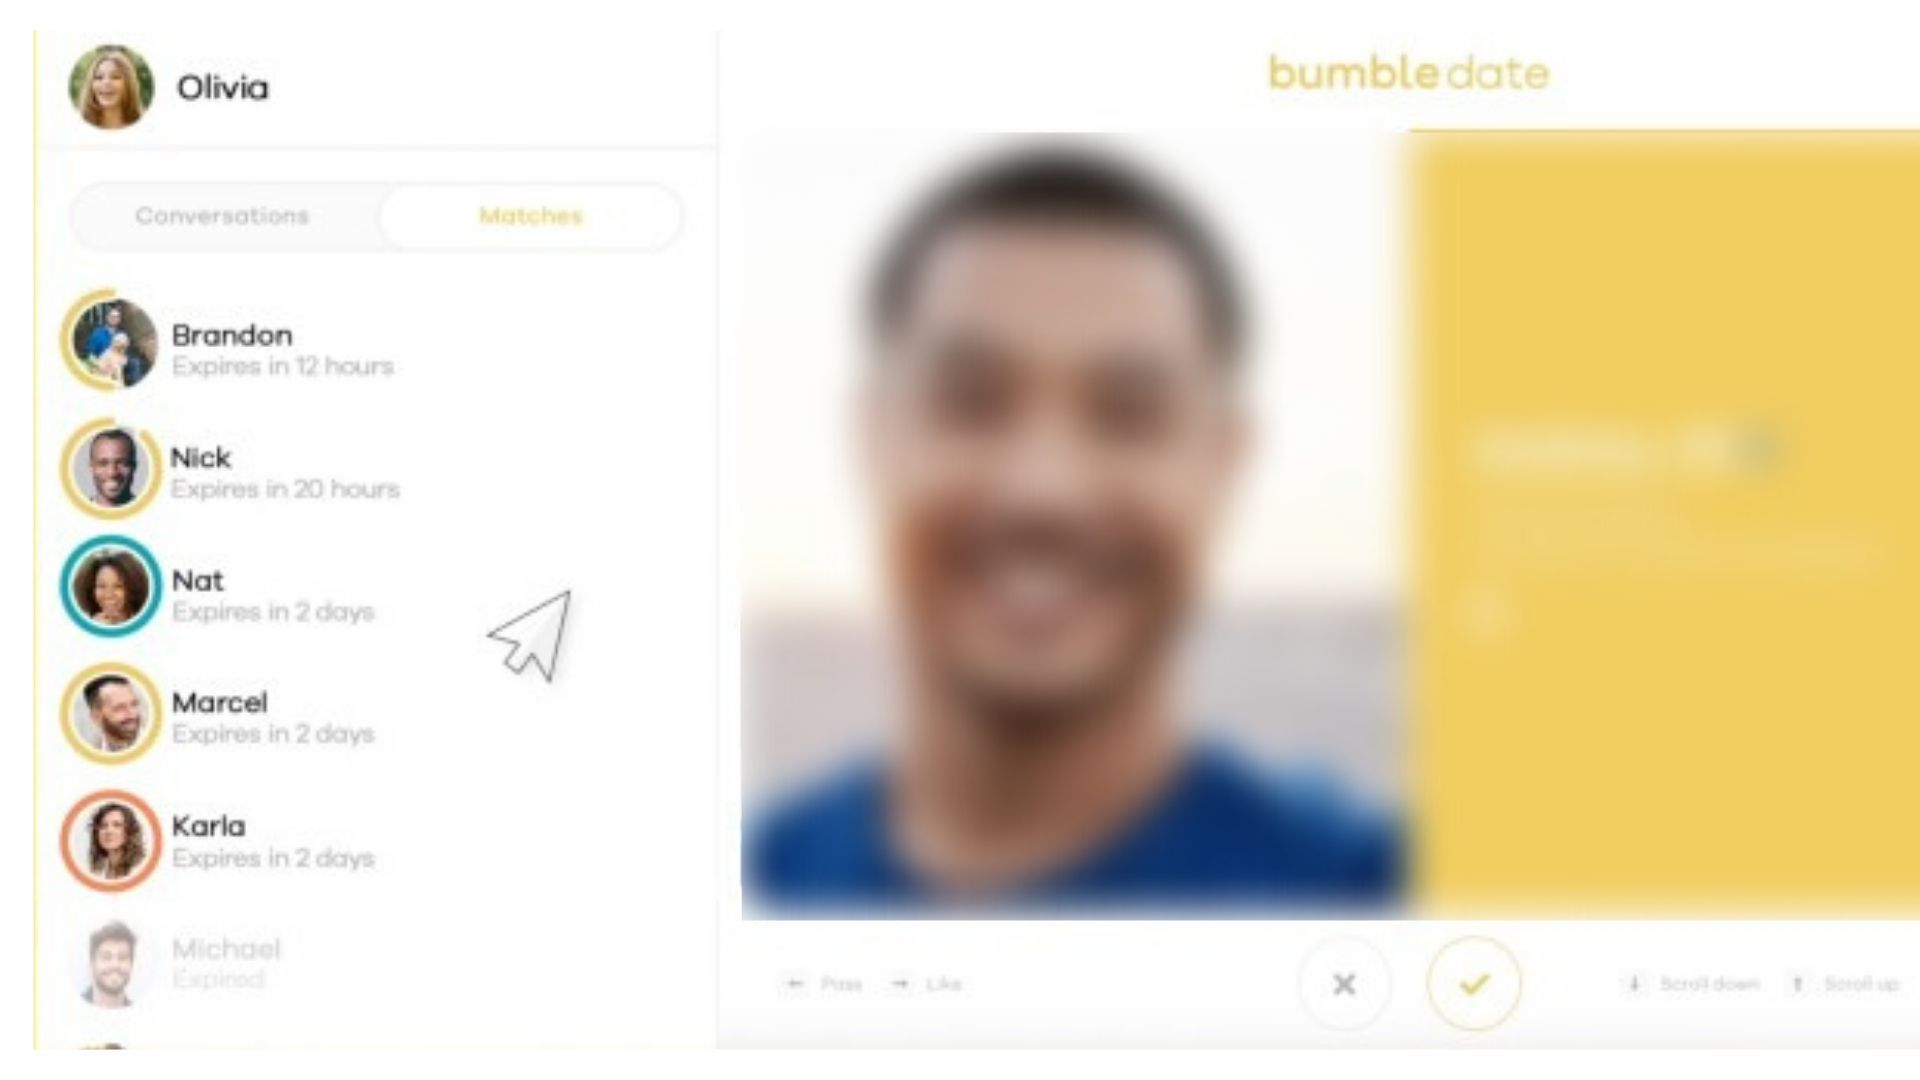 How To Use Bumble Desktop